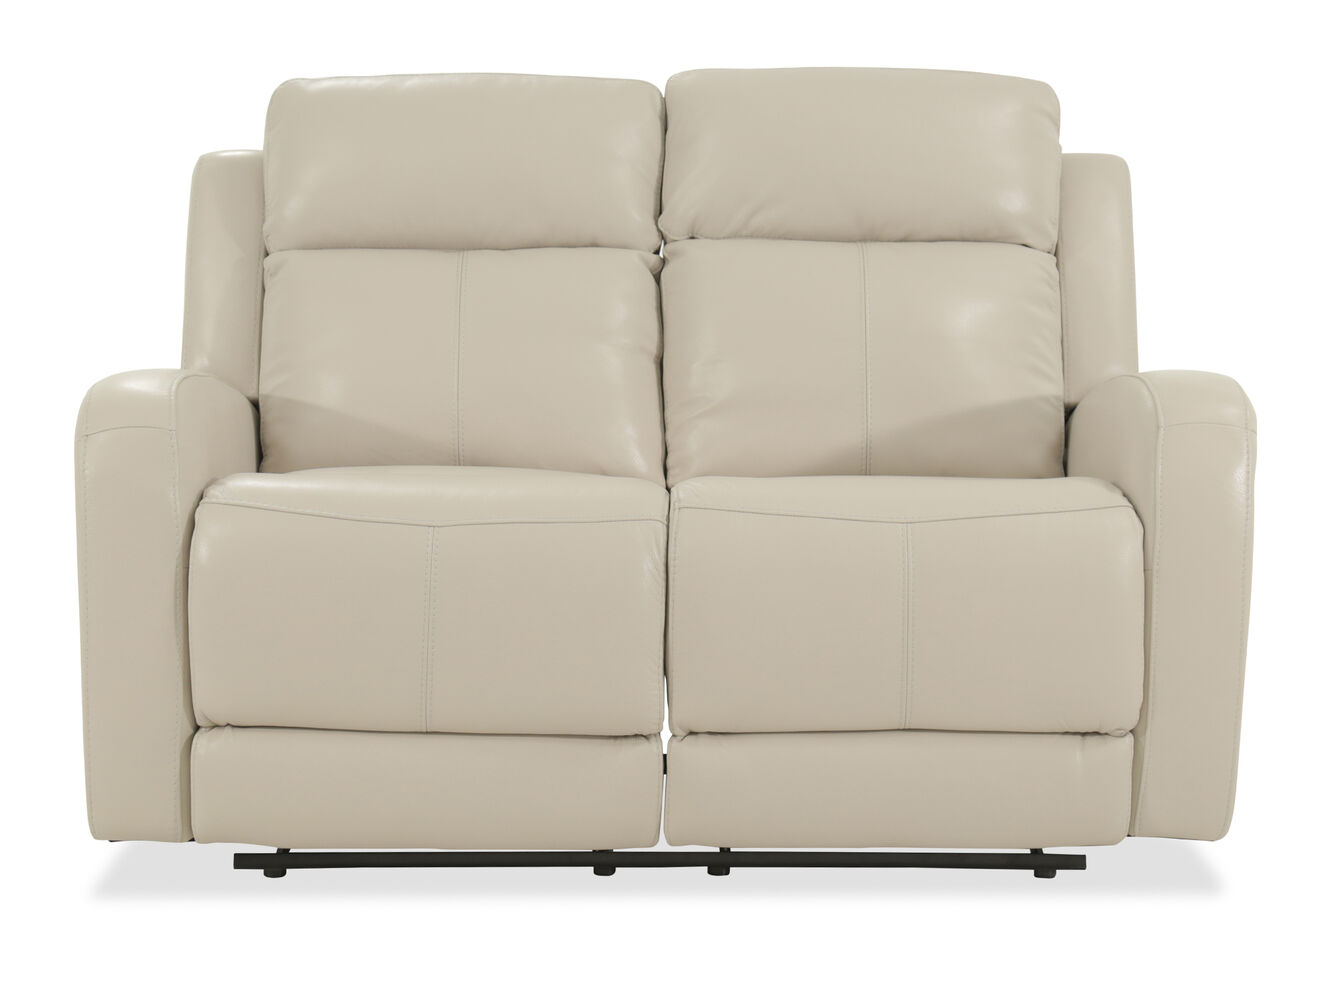 Power Reclining Leather 60 Loveseat In Cream Mathis Brothers Furniture